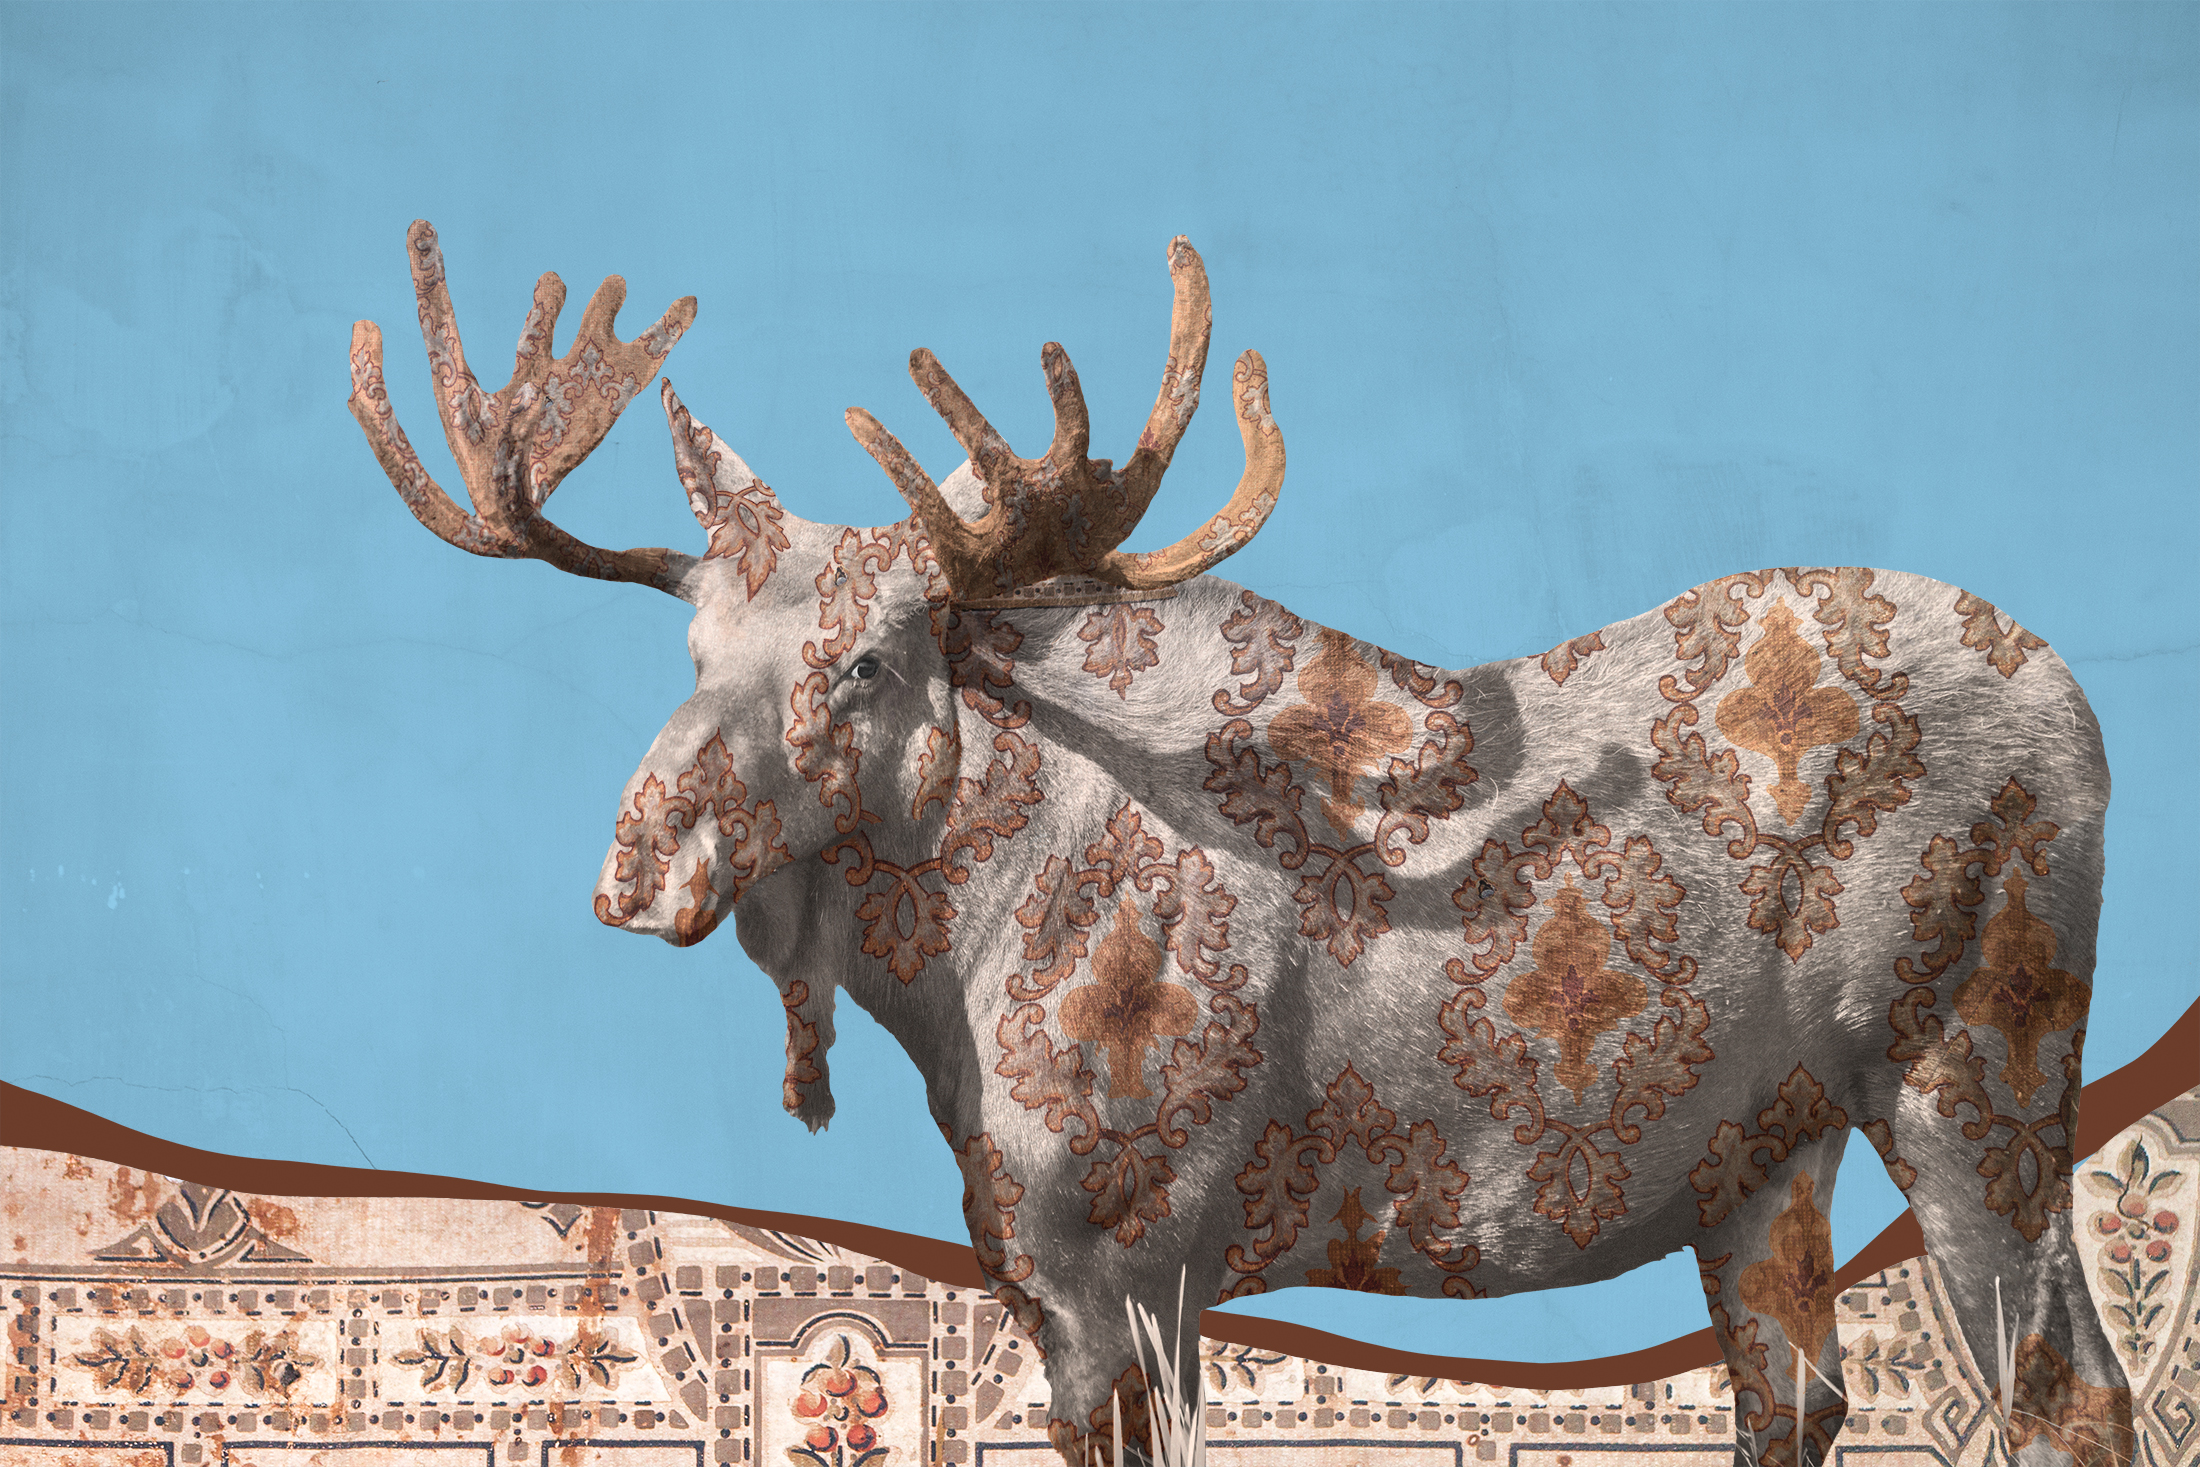 """{ Moose No. 1 }  I photographed this bull moose in Montana's incredible Madison Valley. The patterns I photographed in the National Historic District of Butte, Montana. These two wallpapers hang together in a shack in what is known as the """"Cabbage Patch"""", a shanty town that was once filled with hastily-built shacks and began in the 1880s. These shacks were built of found lumber and scrap metal and folks who lived there would line the interior walls with found materials in an attempt to insulate themselves from the harsh Montana winters. Scoured wallpaper scraps, cardboard, cloth, and newspapers would be used. These wallpaper scraps still hang together in one of only four Cabbage Patch dwellings to stand the test of time."""